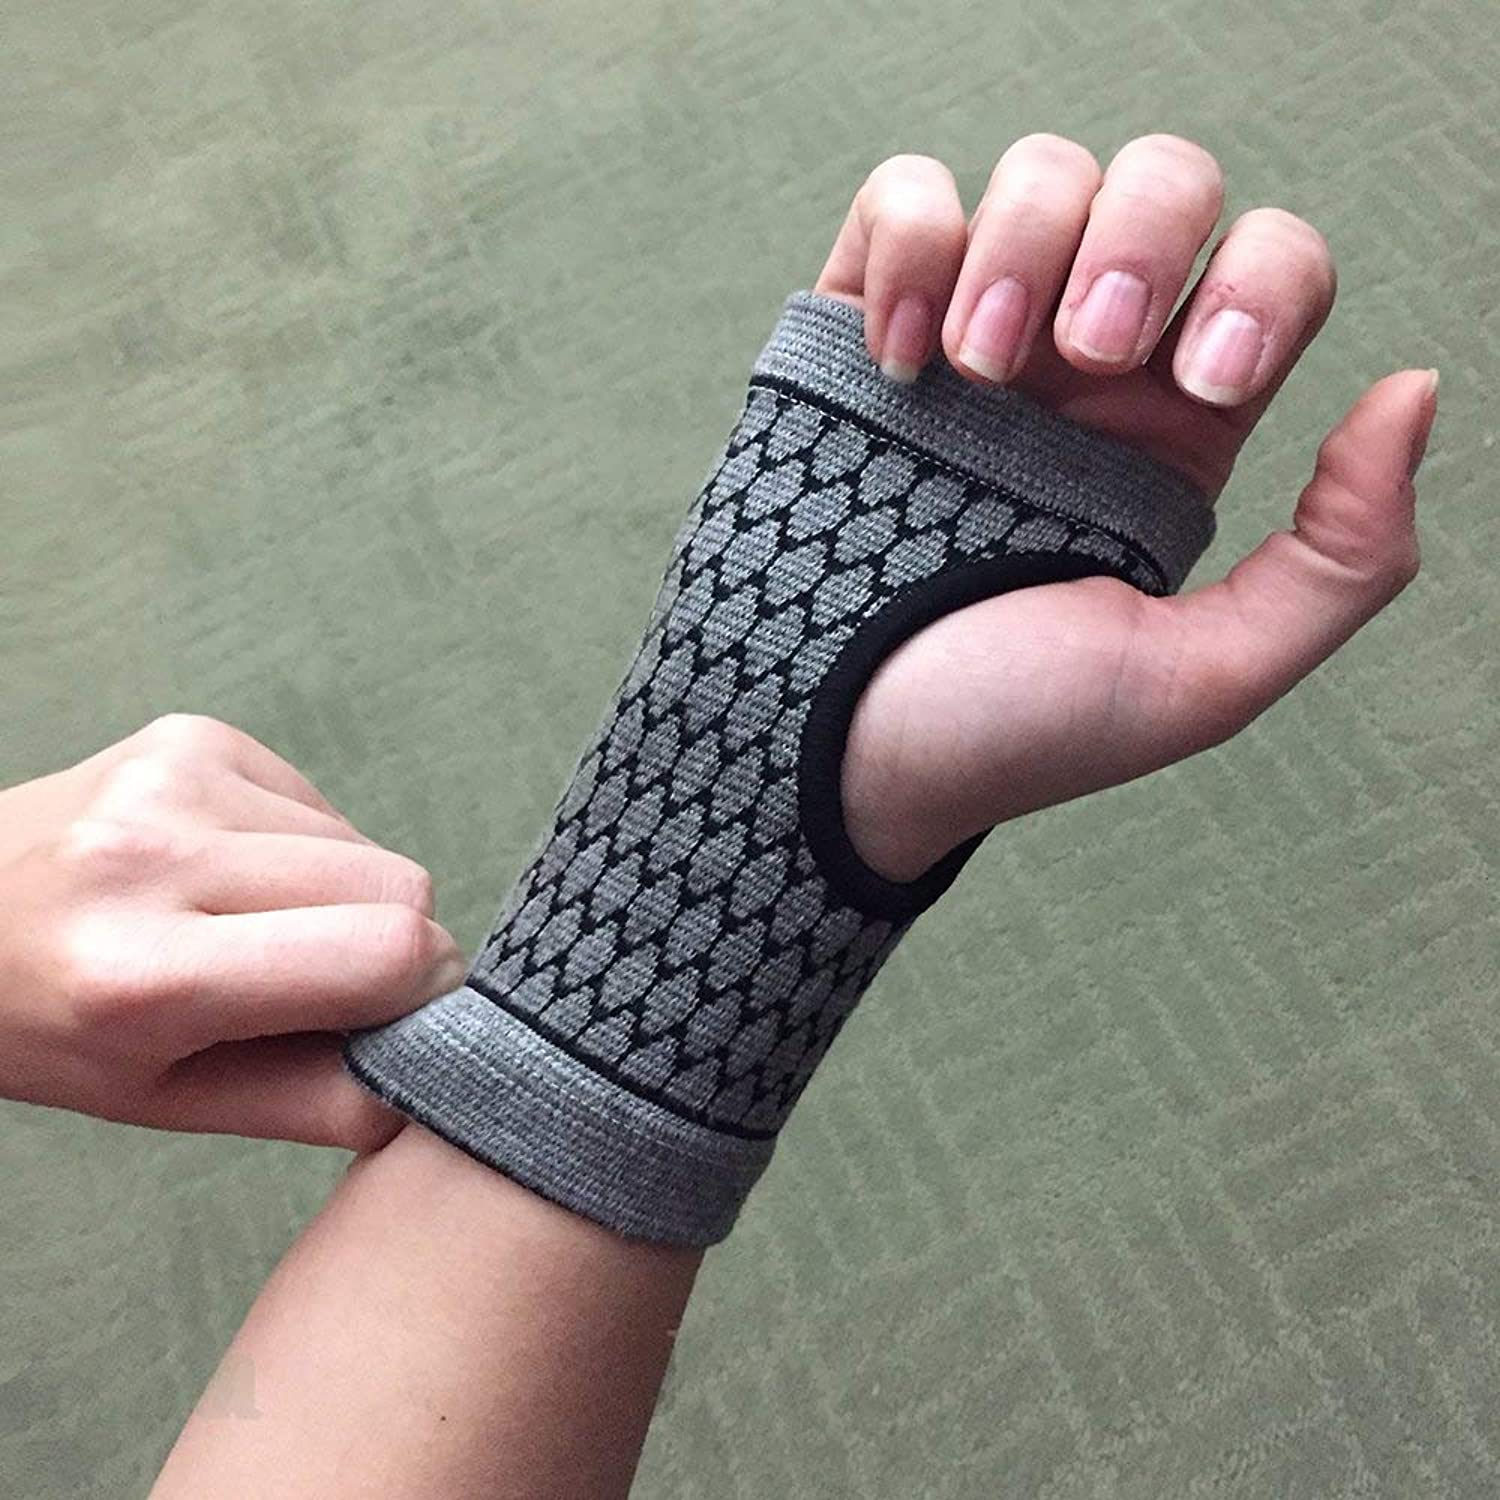 Carpal Tunnel Wrist Support  Bamboo Charcoal Technology  SelfWarming Carpal Support  XSmall